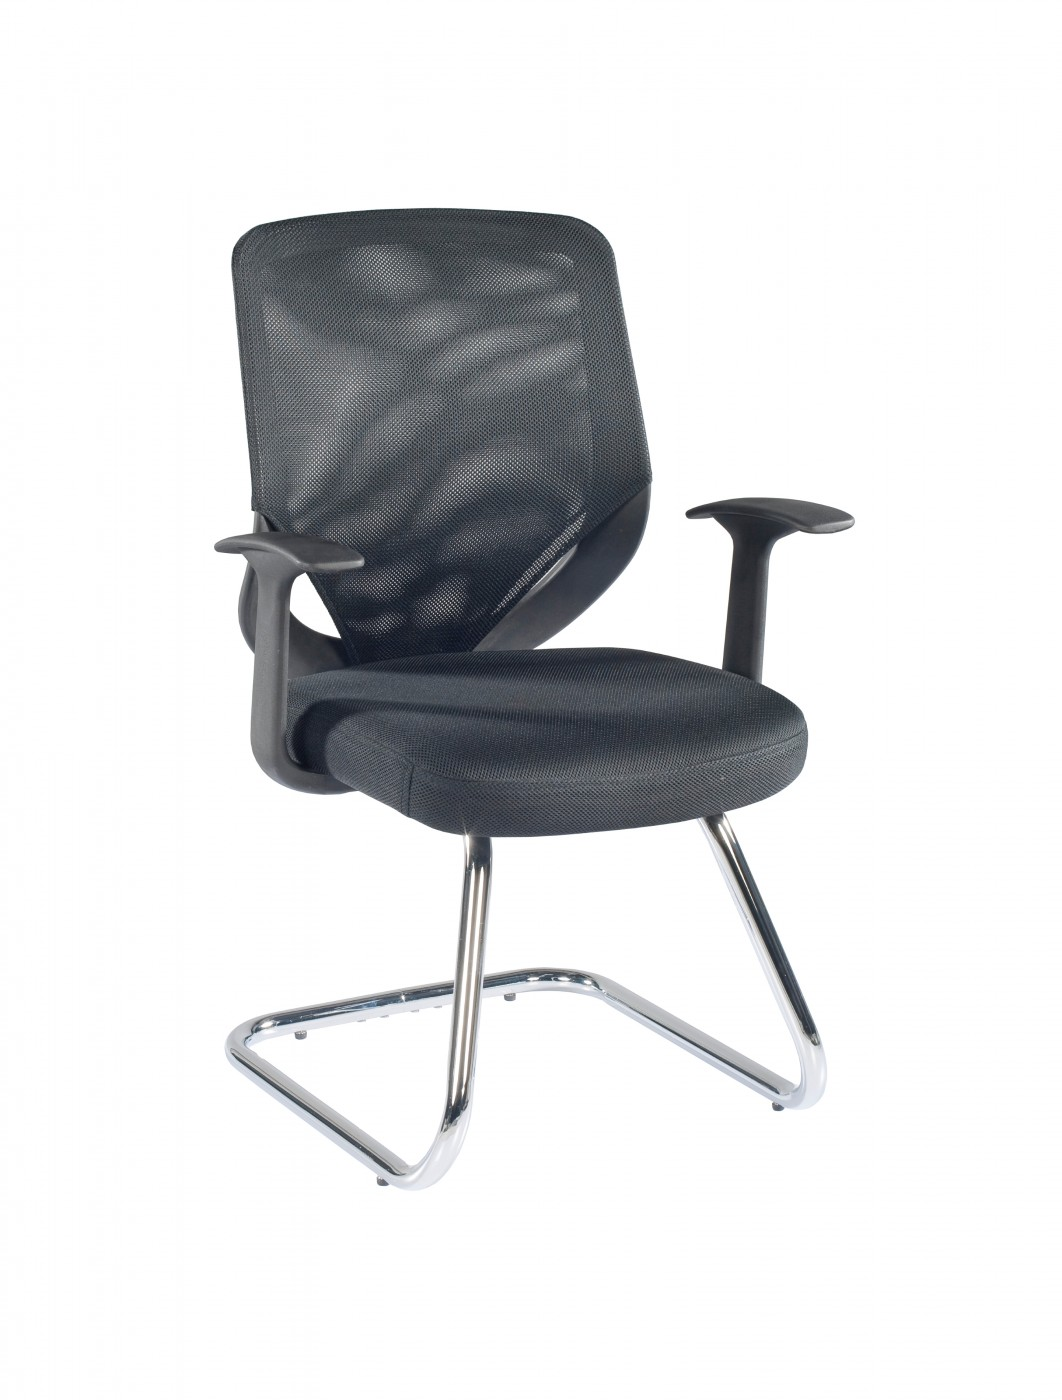 Svago Chair Alphason Atlanta Office Visitors Chairs Aoc9201 V Blk